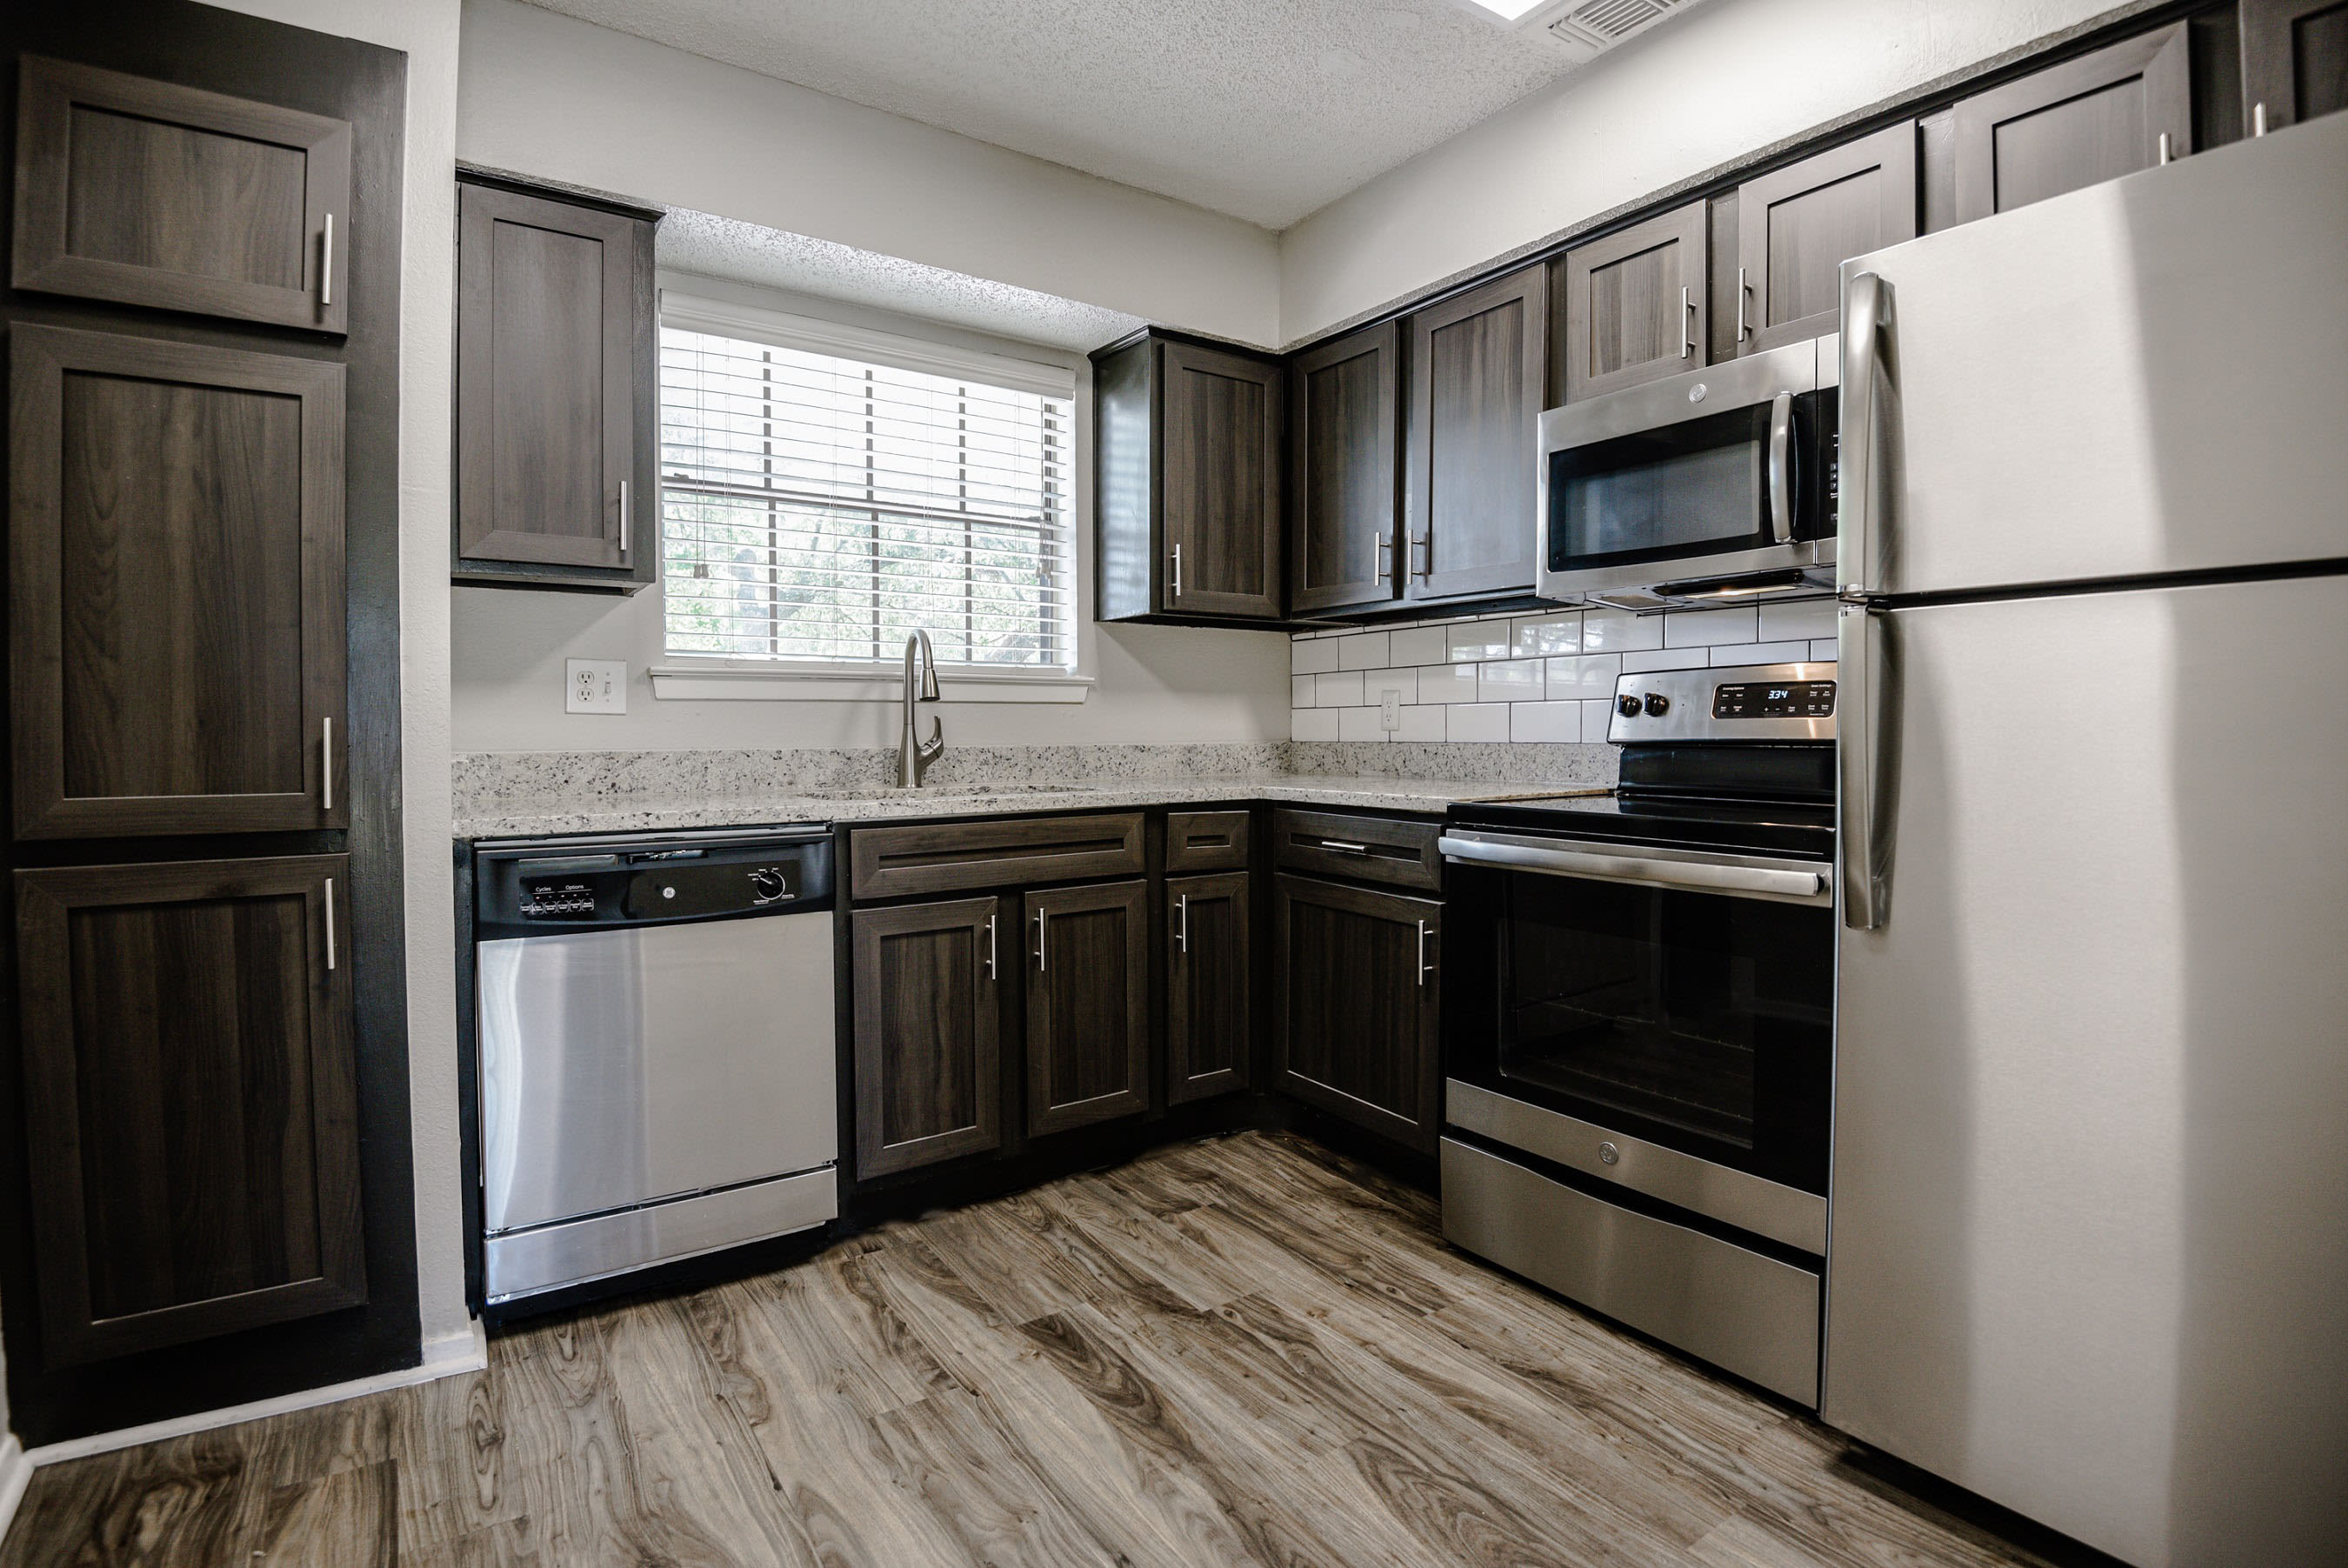 Kitchen with plenty of counter space and stainless-steel appliances at The Regent in Dallas, Texas